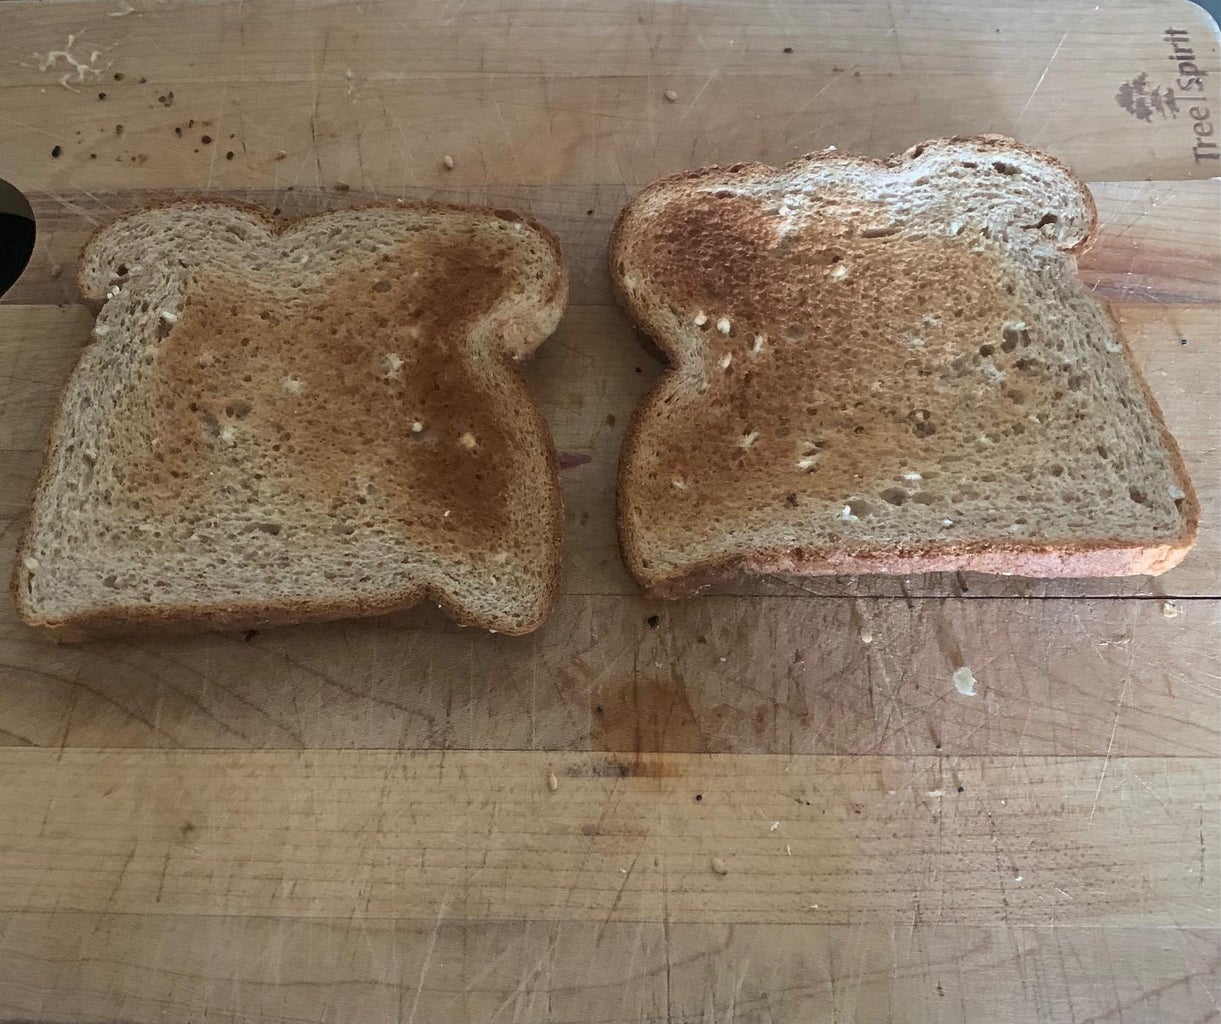 The Bacon and the Toast